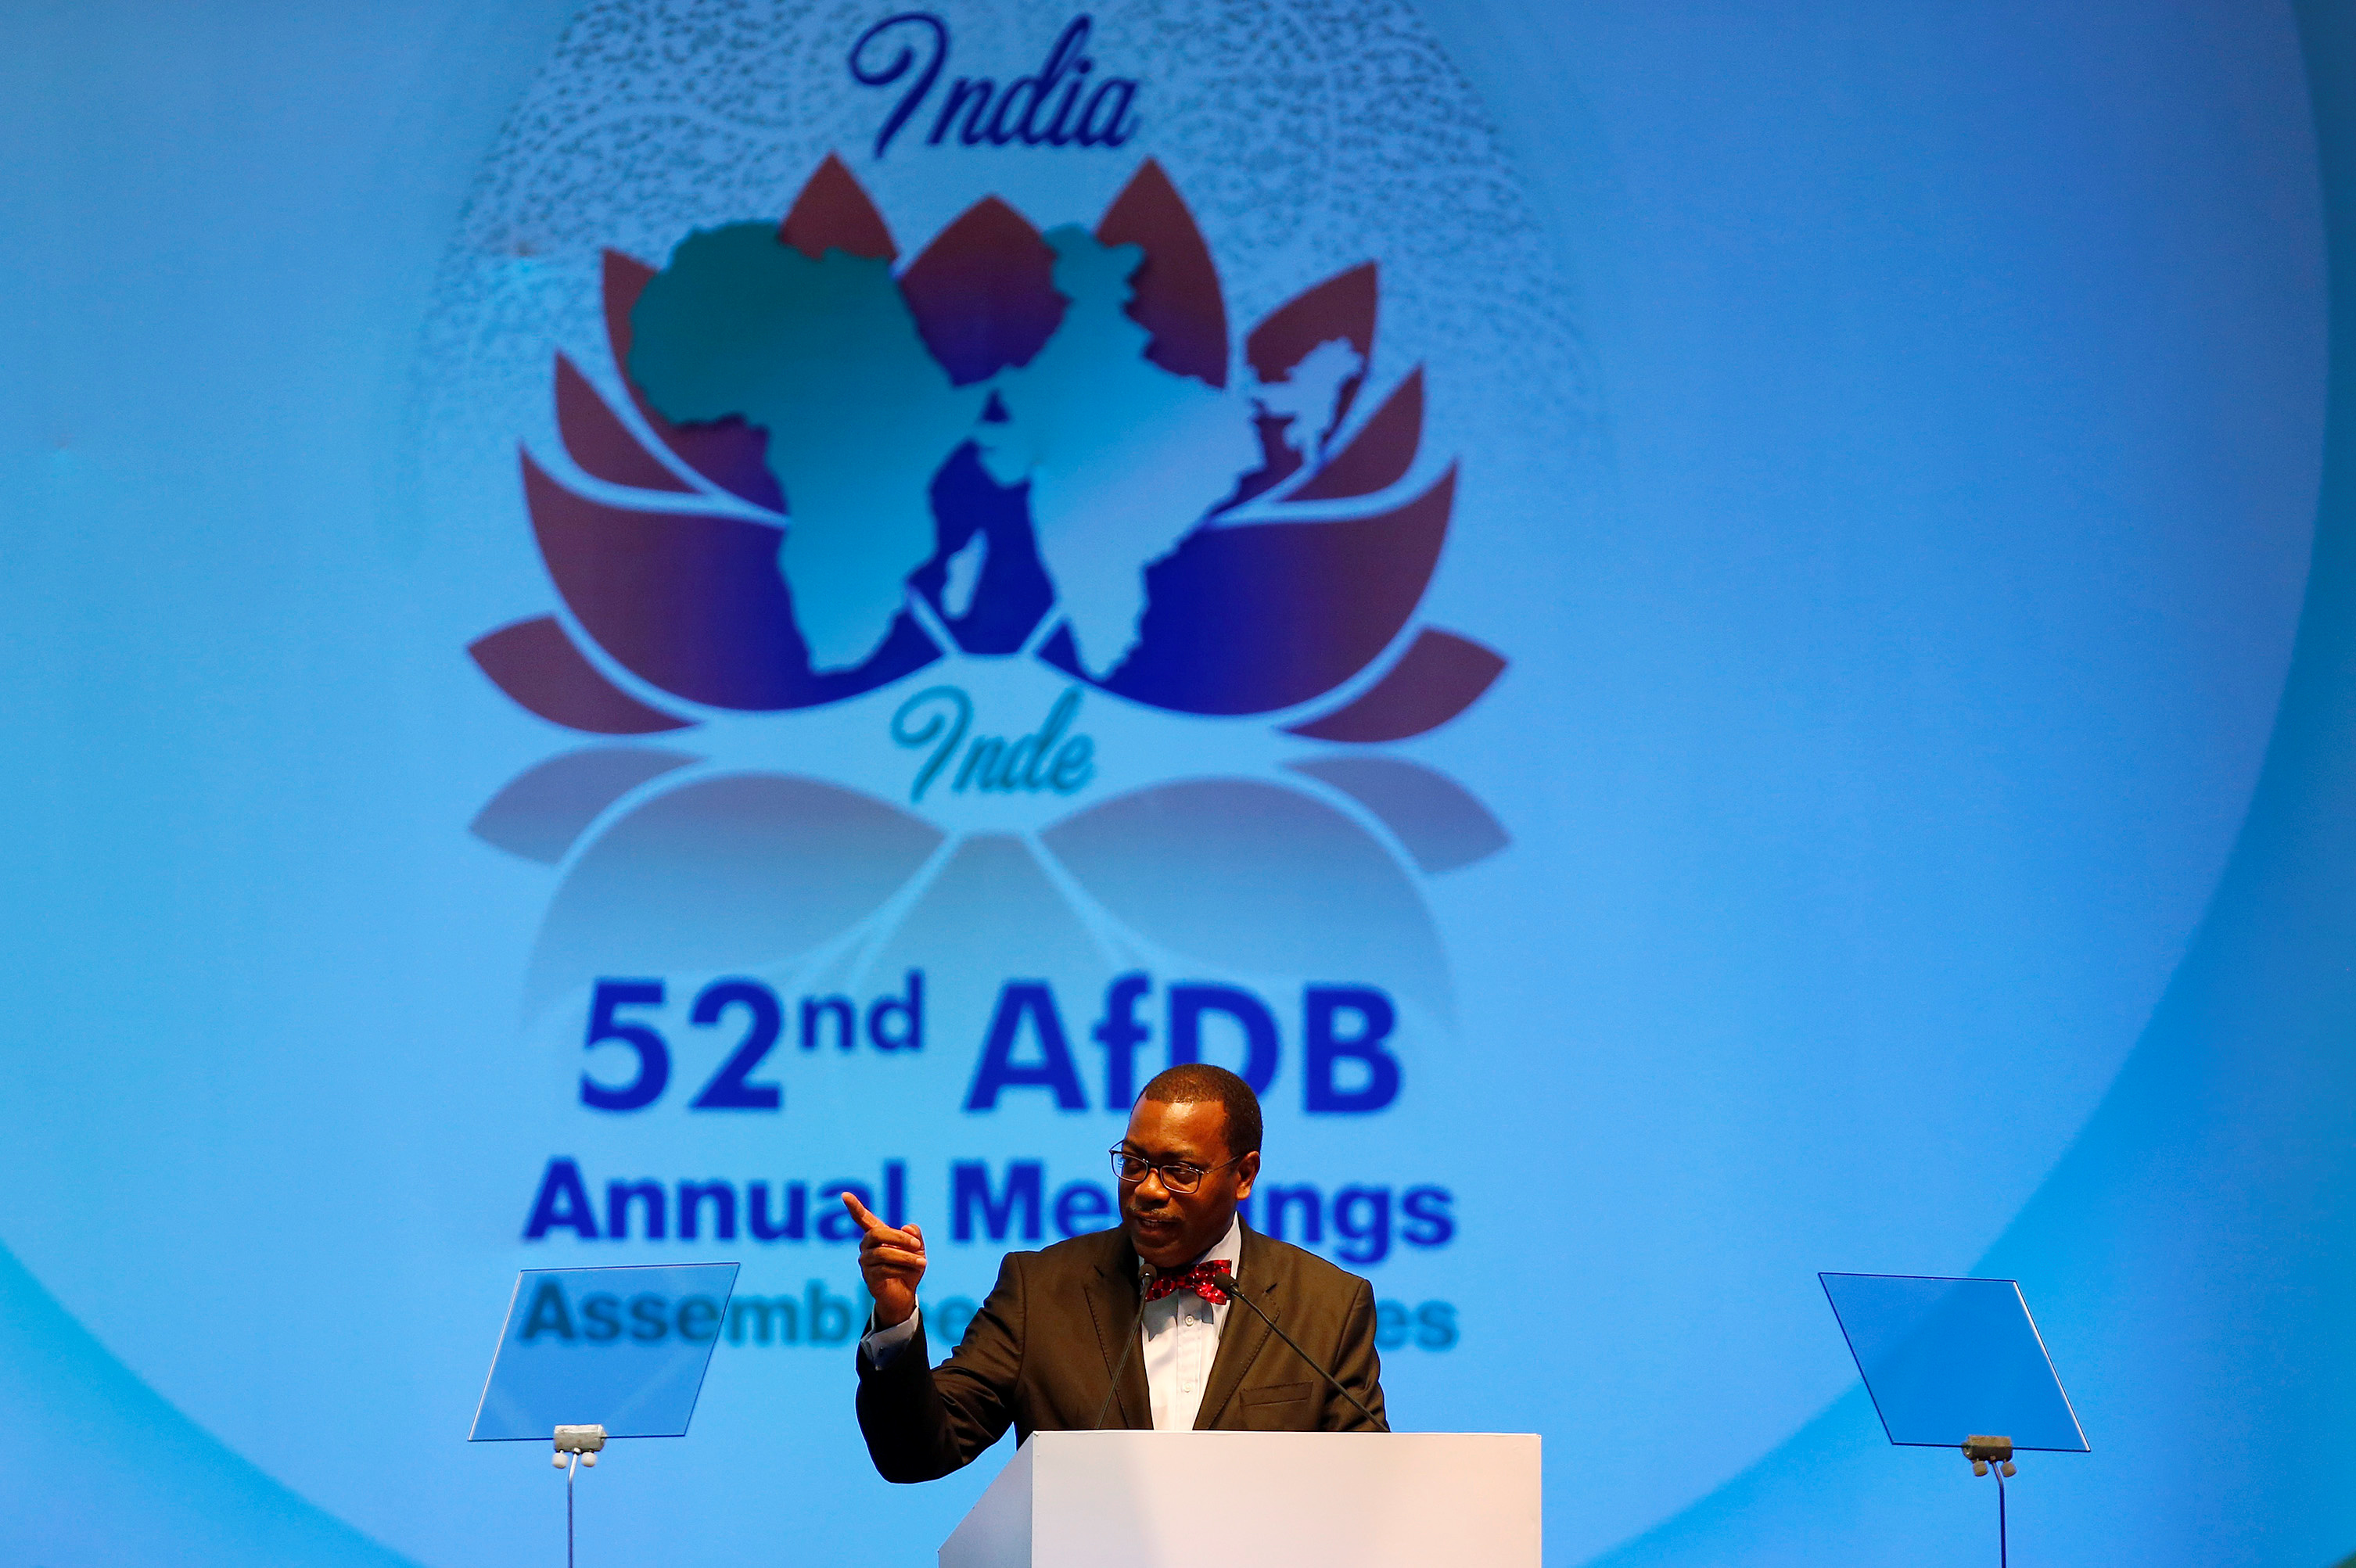 African Development Bank (AfDB) President Akinwumi Adesina addresses the audience during the inauguration ceremony of the Annual General Meeting of AfDB bank in Gandhinagar, India May 23, 2017. REUTERS/Amit Dave - RC1BE6744E00